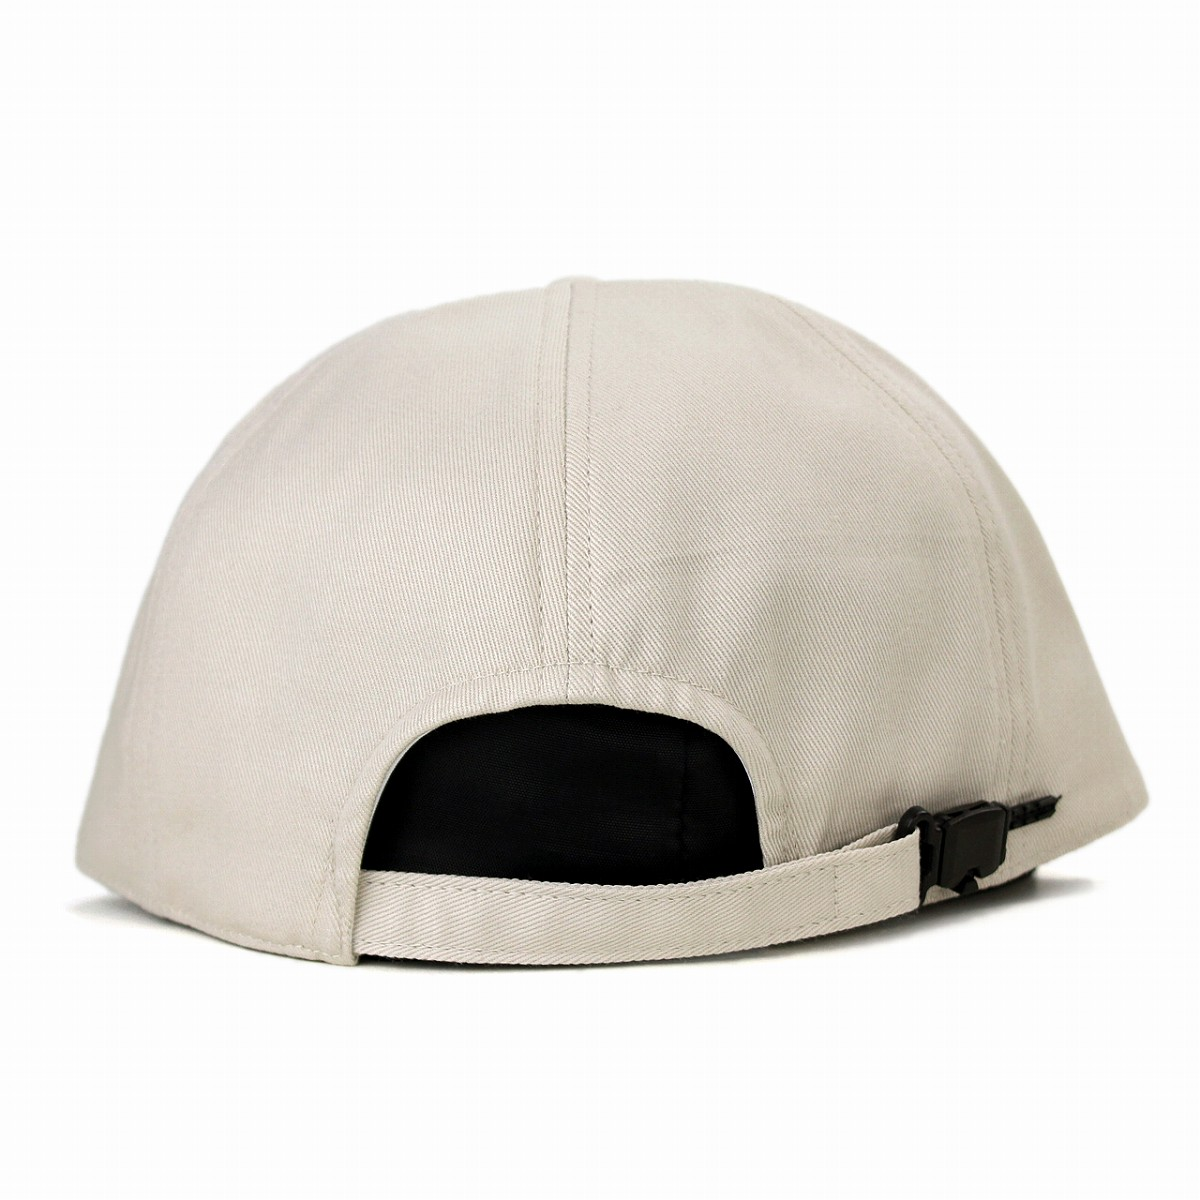 6f1e3d397a56 Crocodile brand Shin pull coordinates sports cap unisex M large size  adjustment / beige [baseball cap] Christmas gift birthday present in  lacoste cap ...